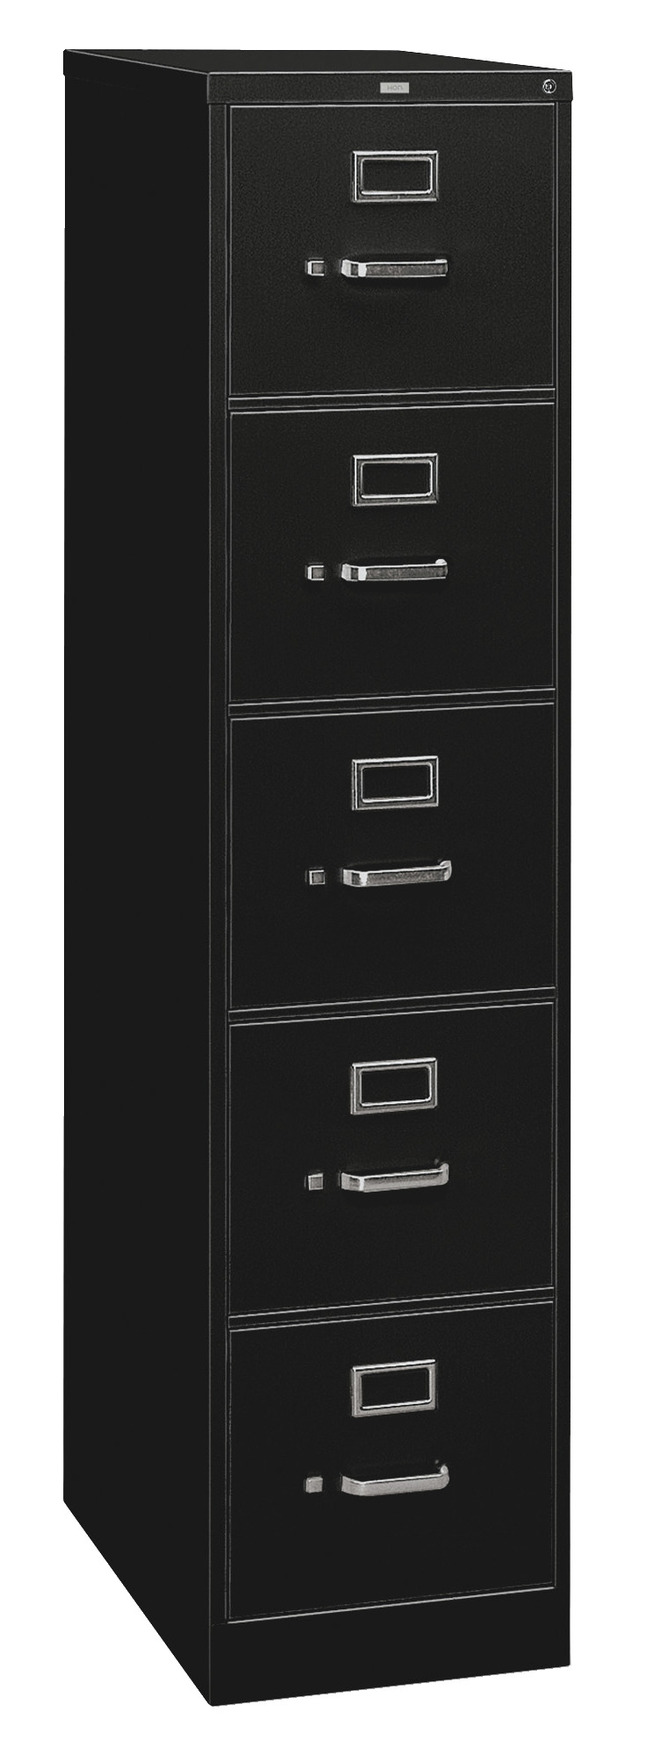 Filing Cabinets Supplies, Item Number 1061443